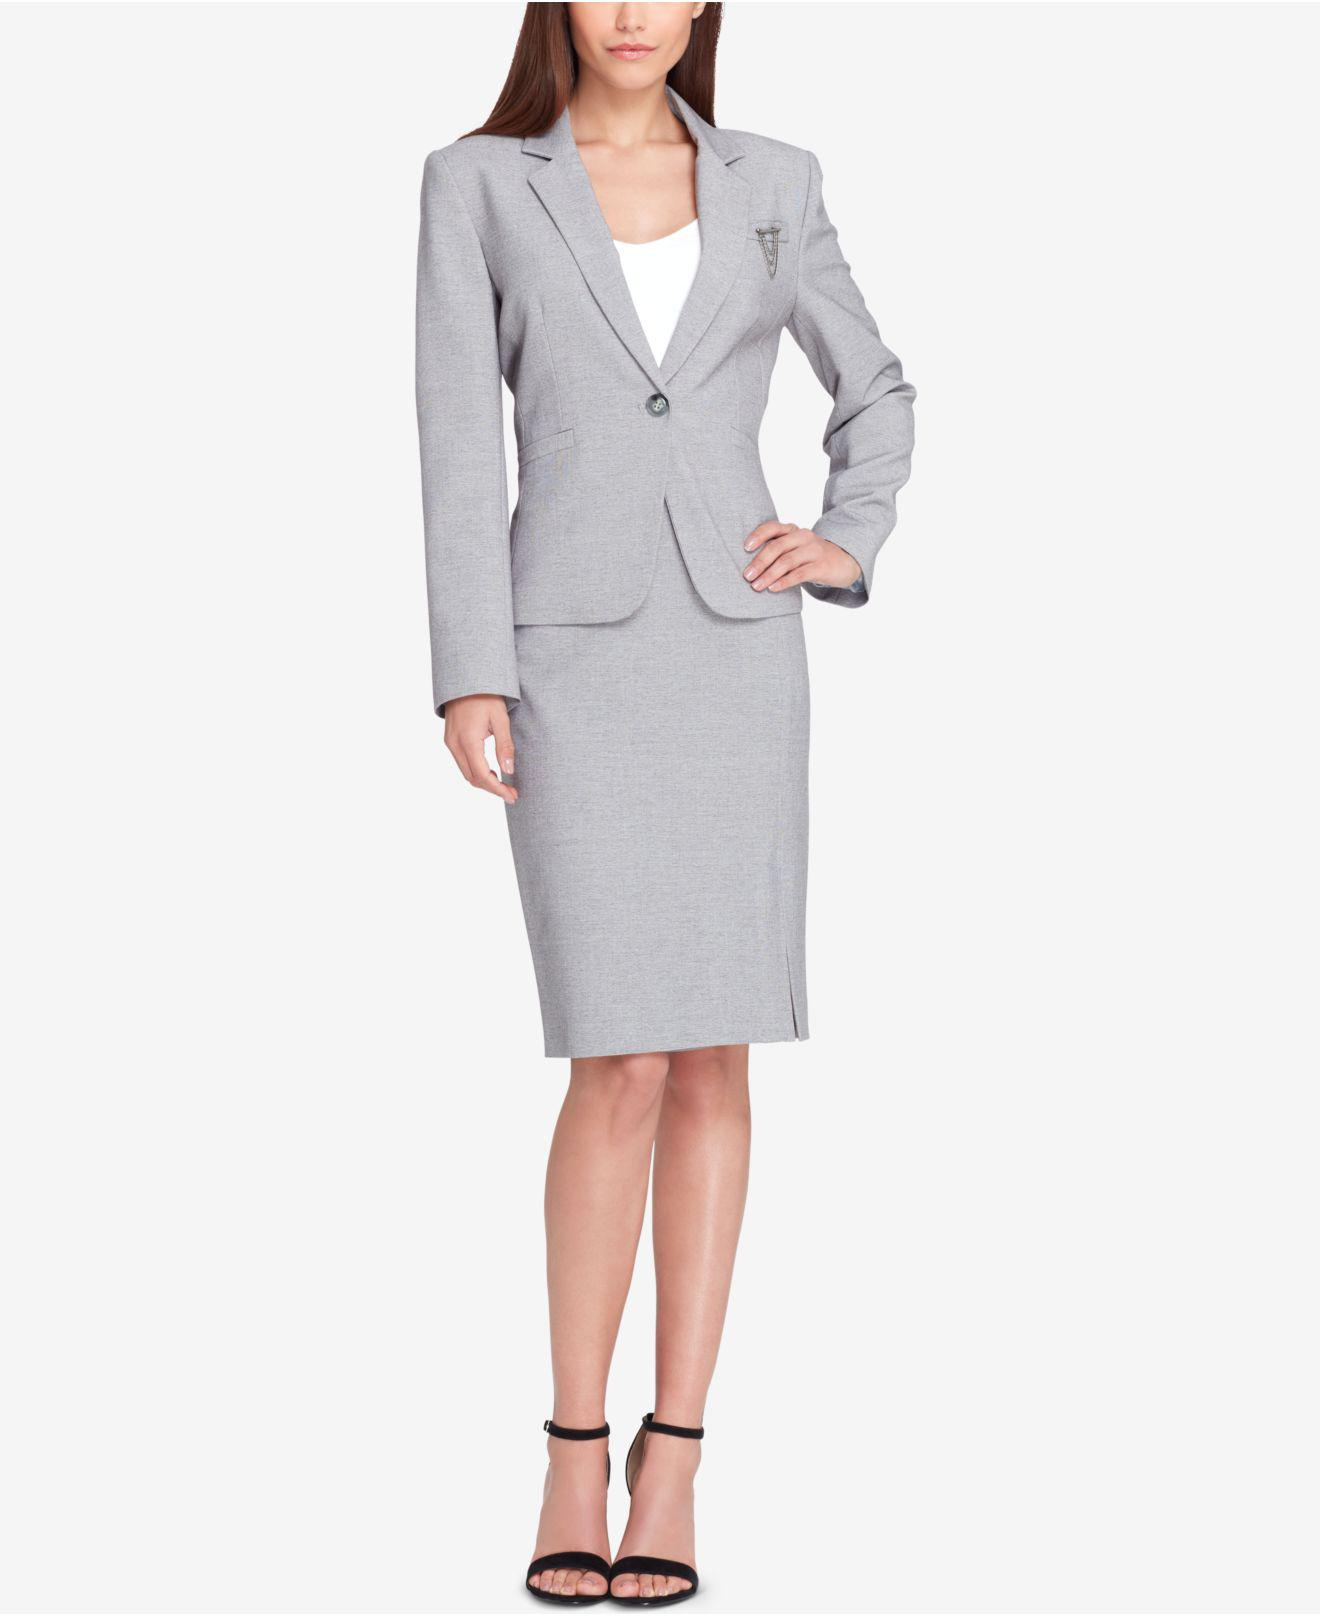 32654e2ab21d4 Lyst - Tahari Embellished One-button Skirt Suit in Gray